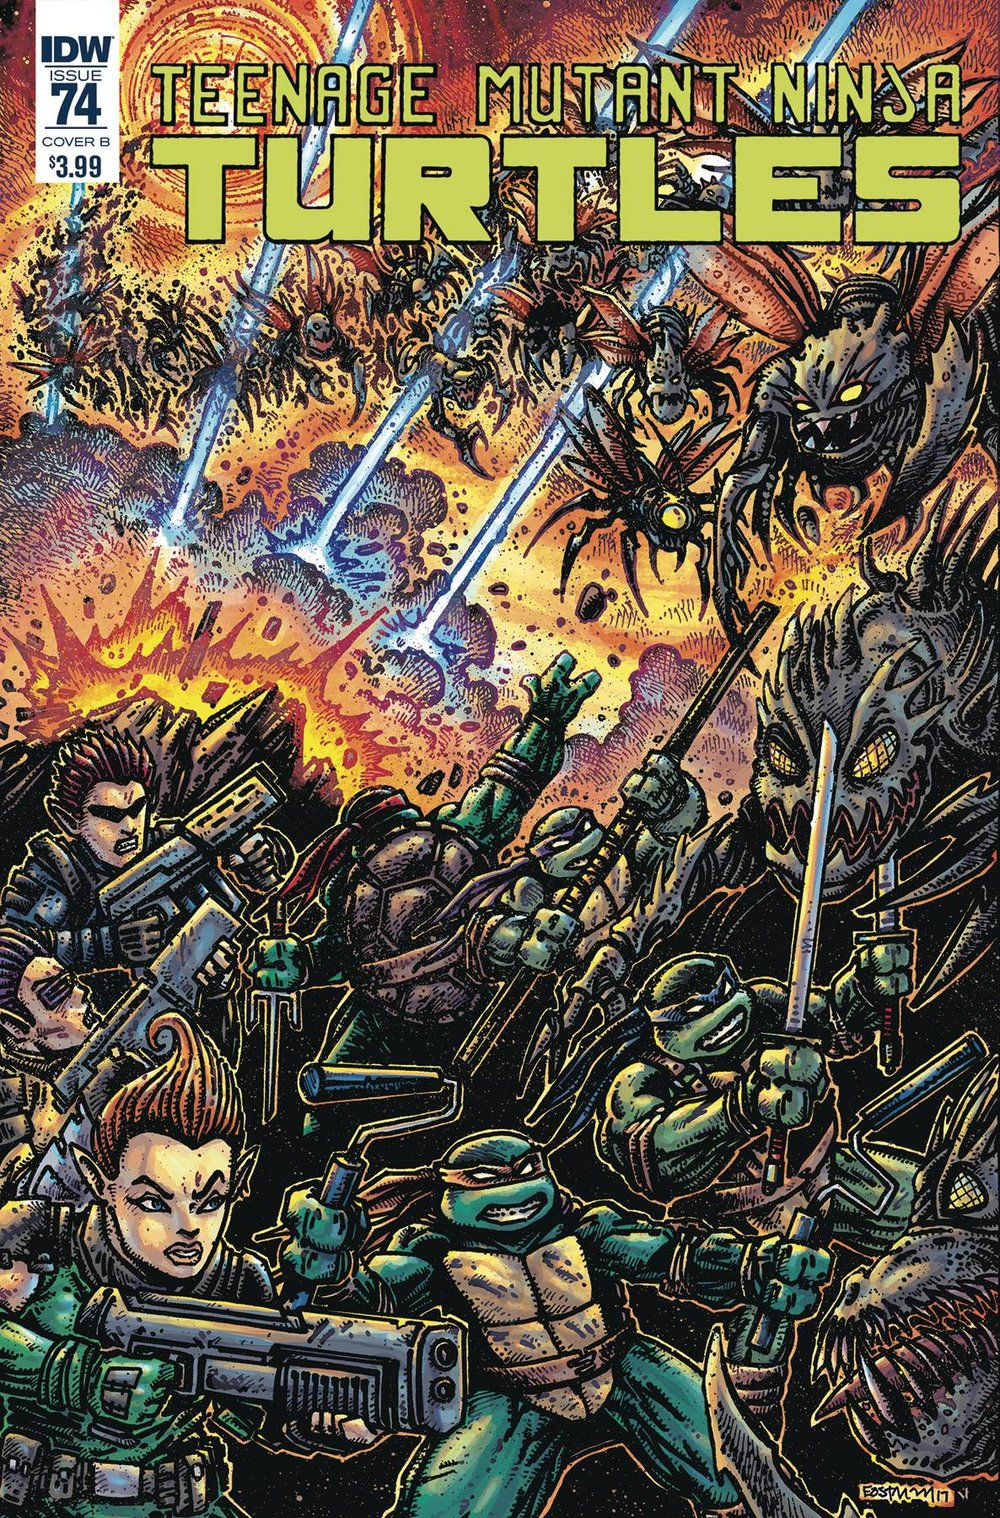 TMNT ONGOING 74 CVR B EASTMAN.jpg